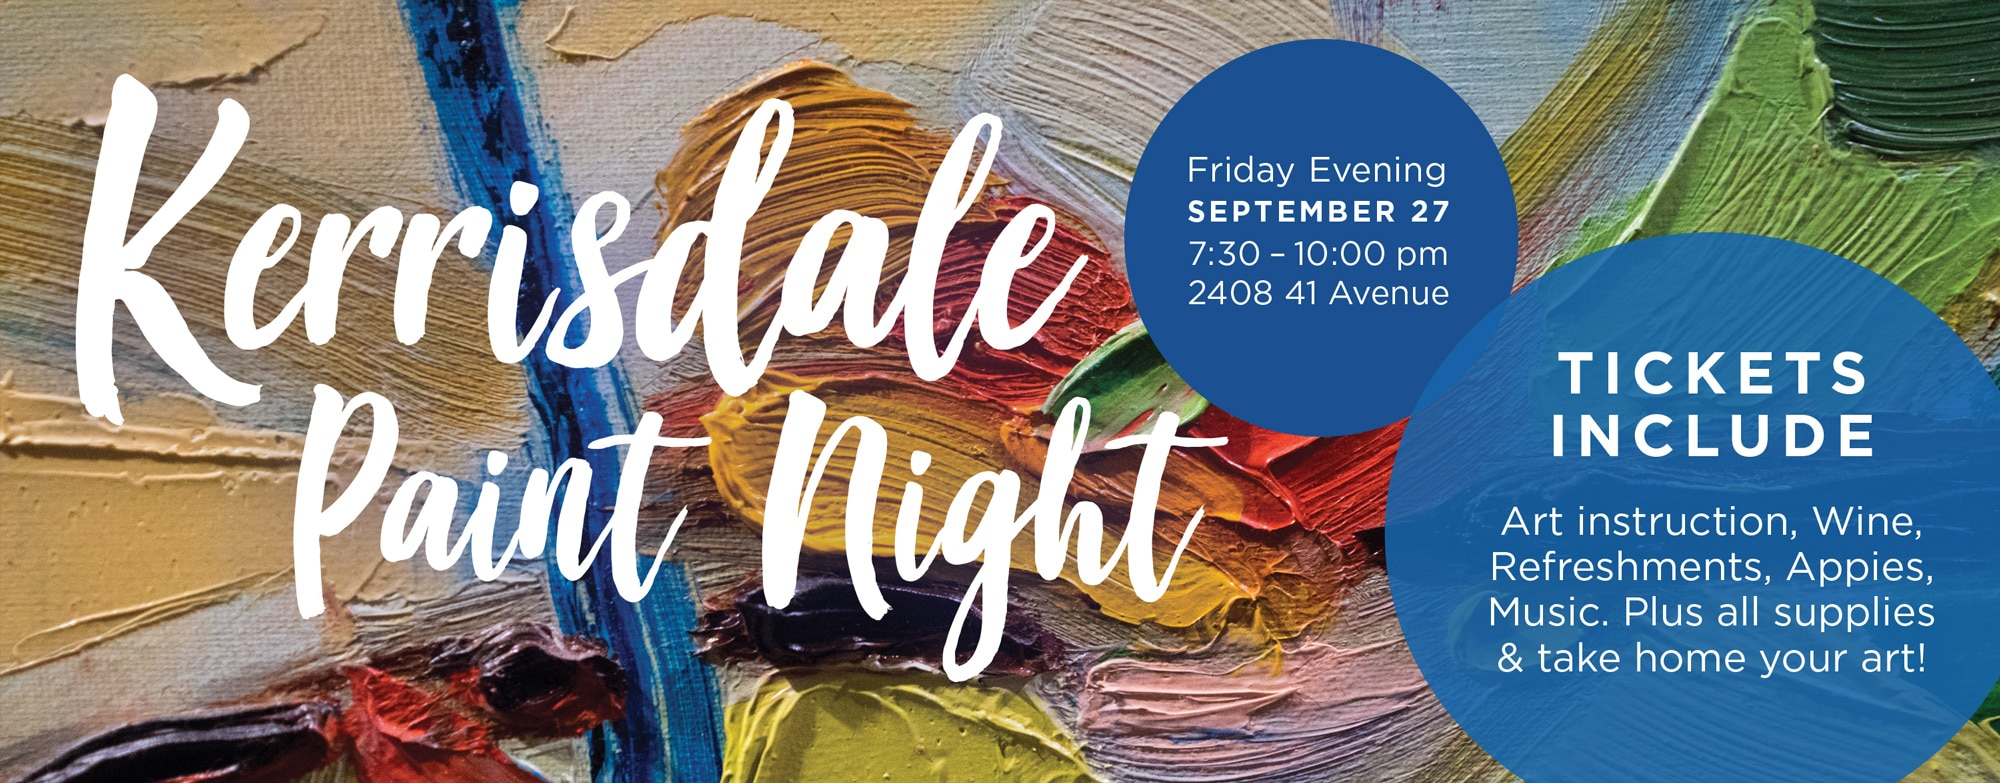 Kerrisdale Paint Night - September